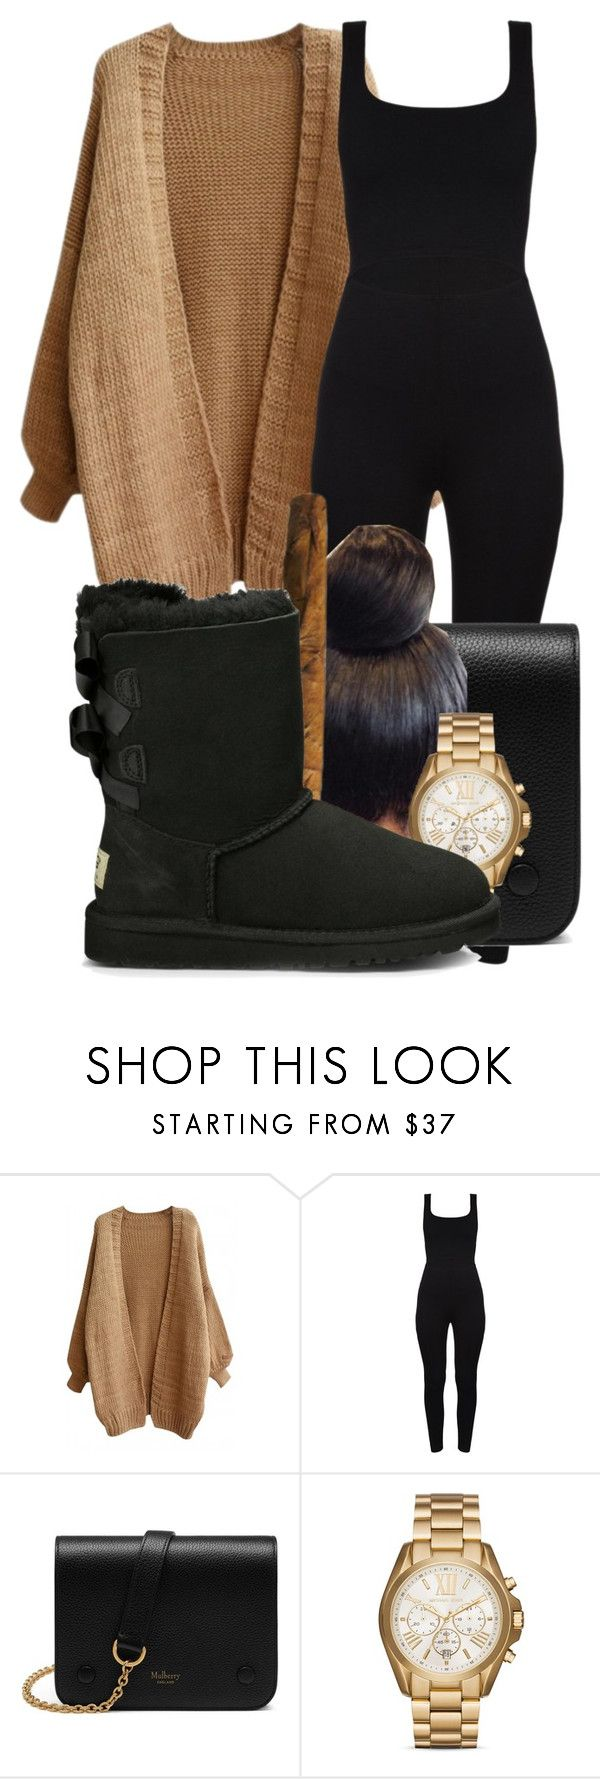 """okaaaaaaaay"" by gvlden-bvbx ❤ liked on Polyvore featuring Mulberry, Michael Kors and UGG Australia"